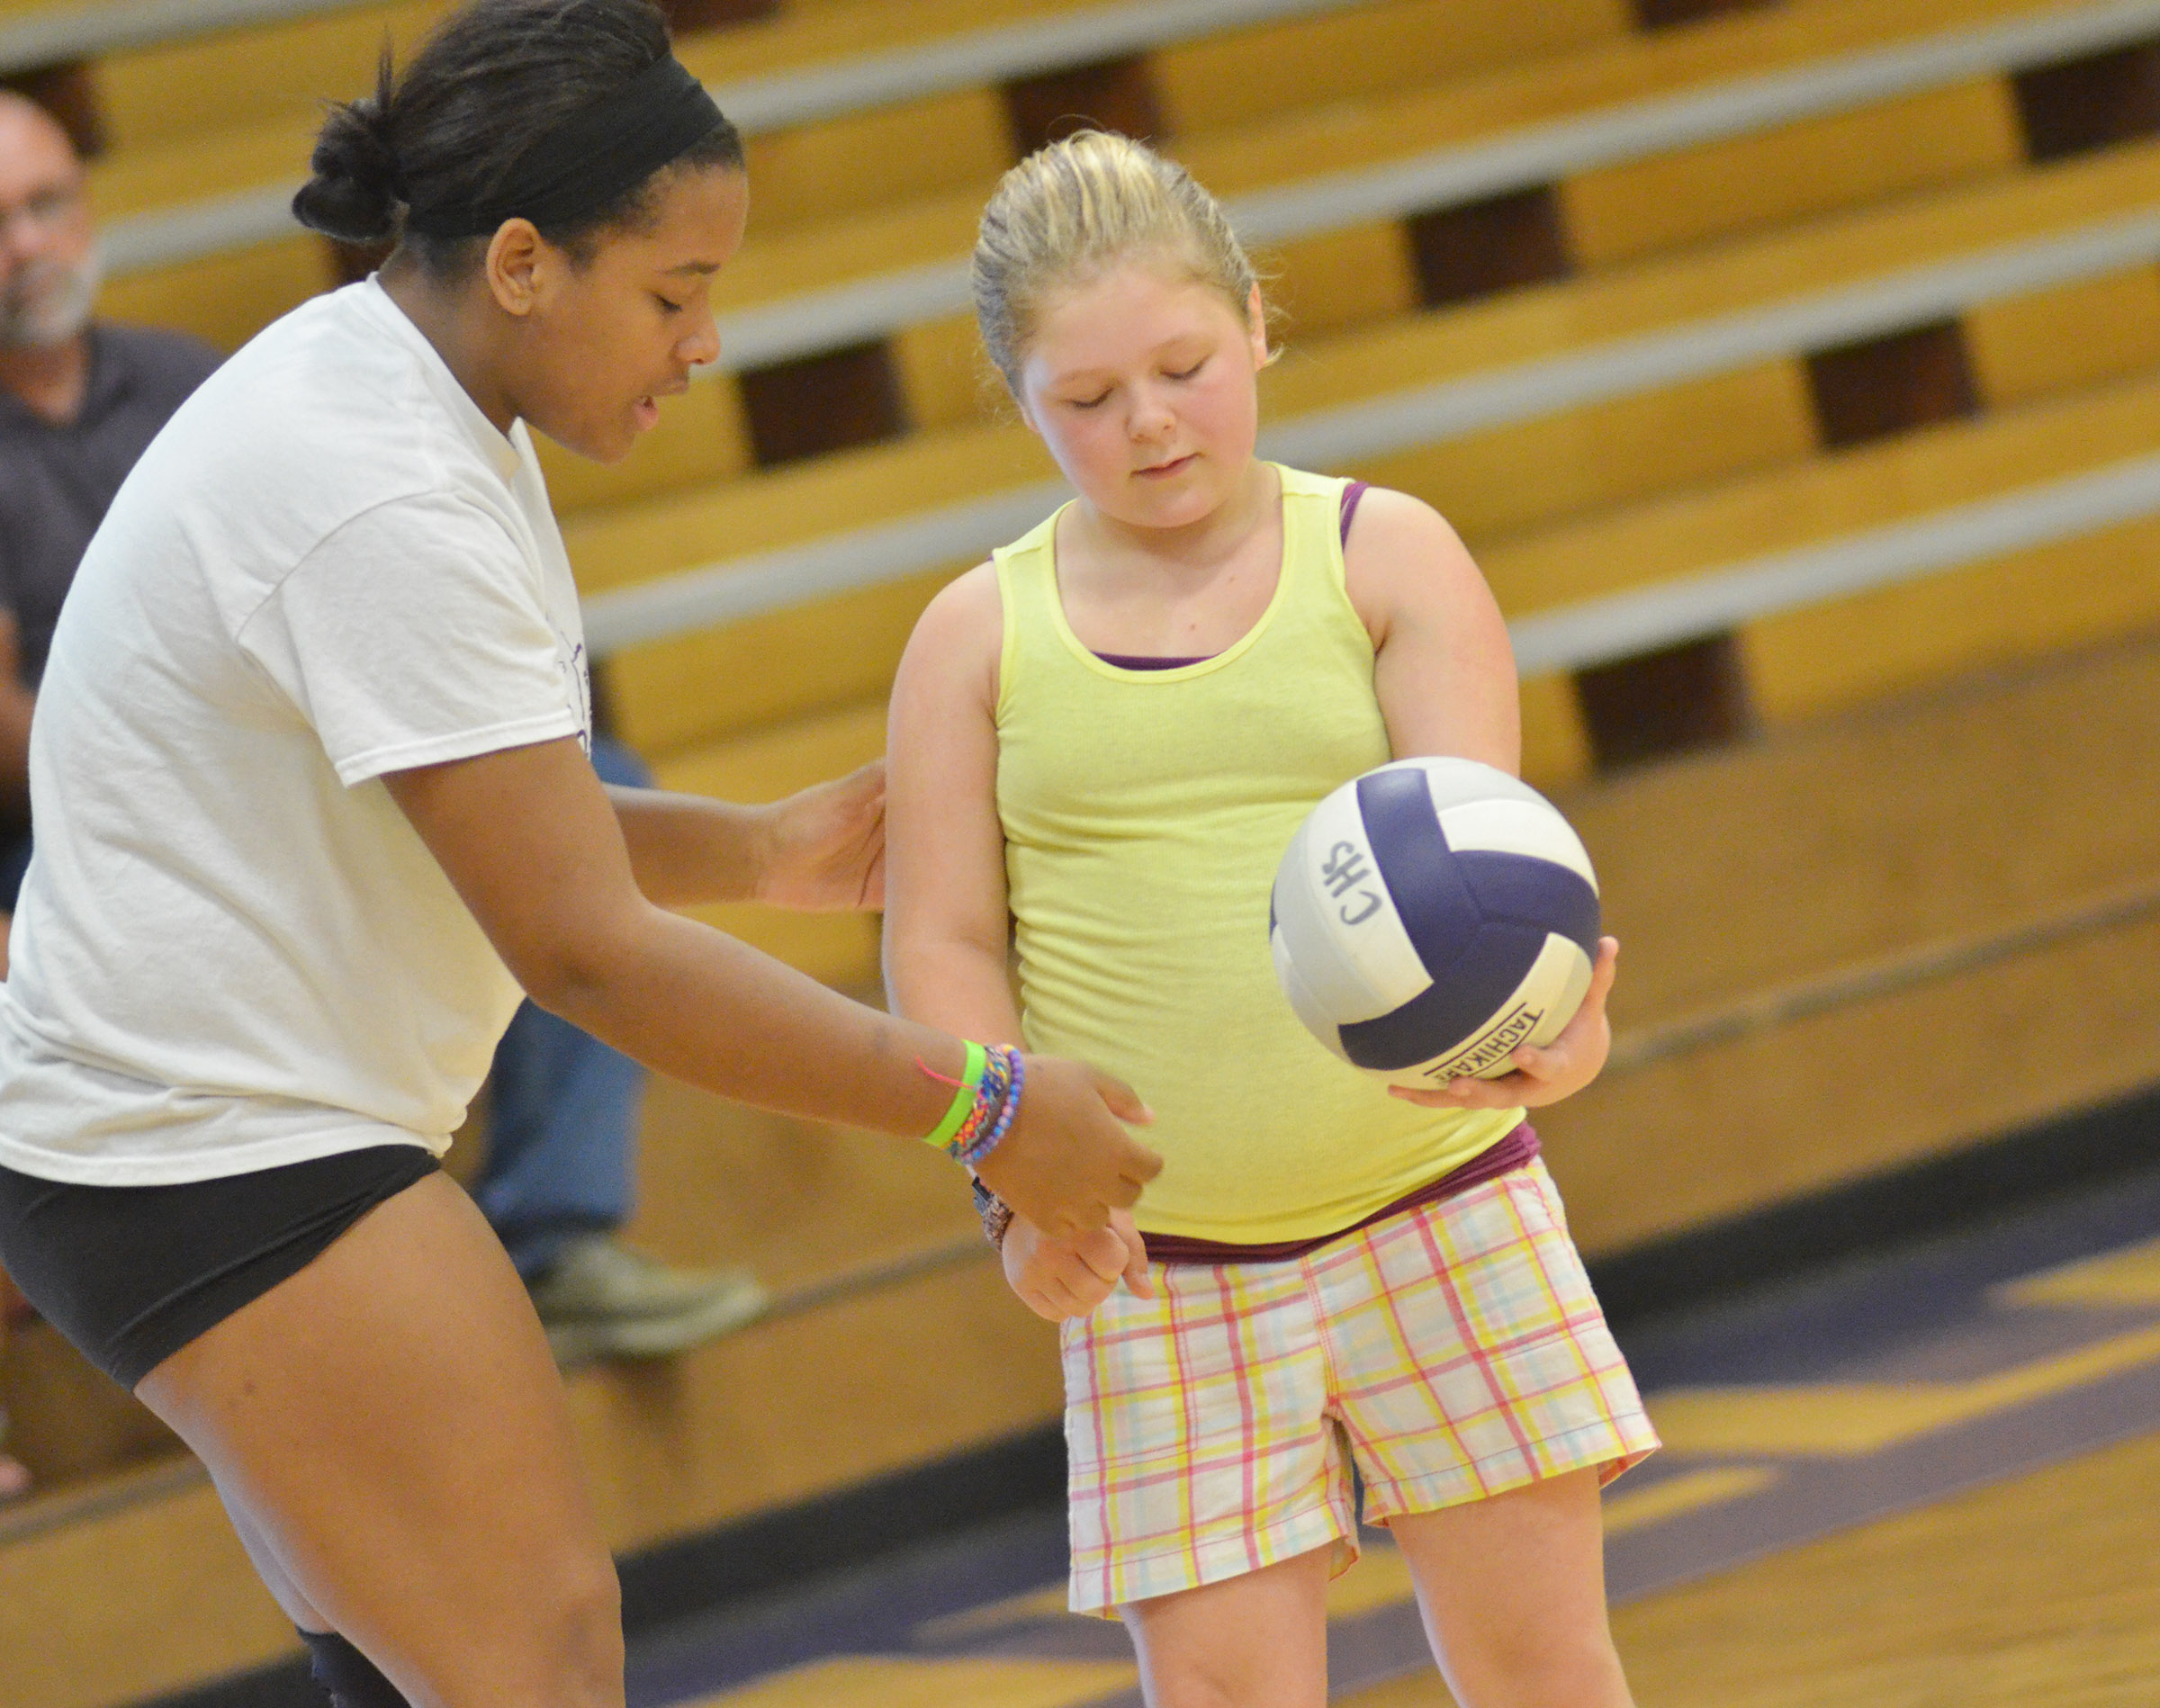 CHS senior Kayla Young talks to CMS sixth-grader Alexis Sharp about the correct way to serve.